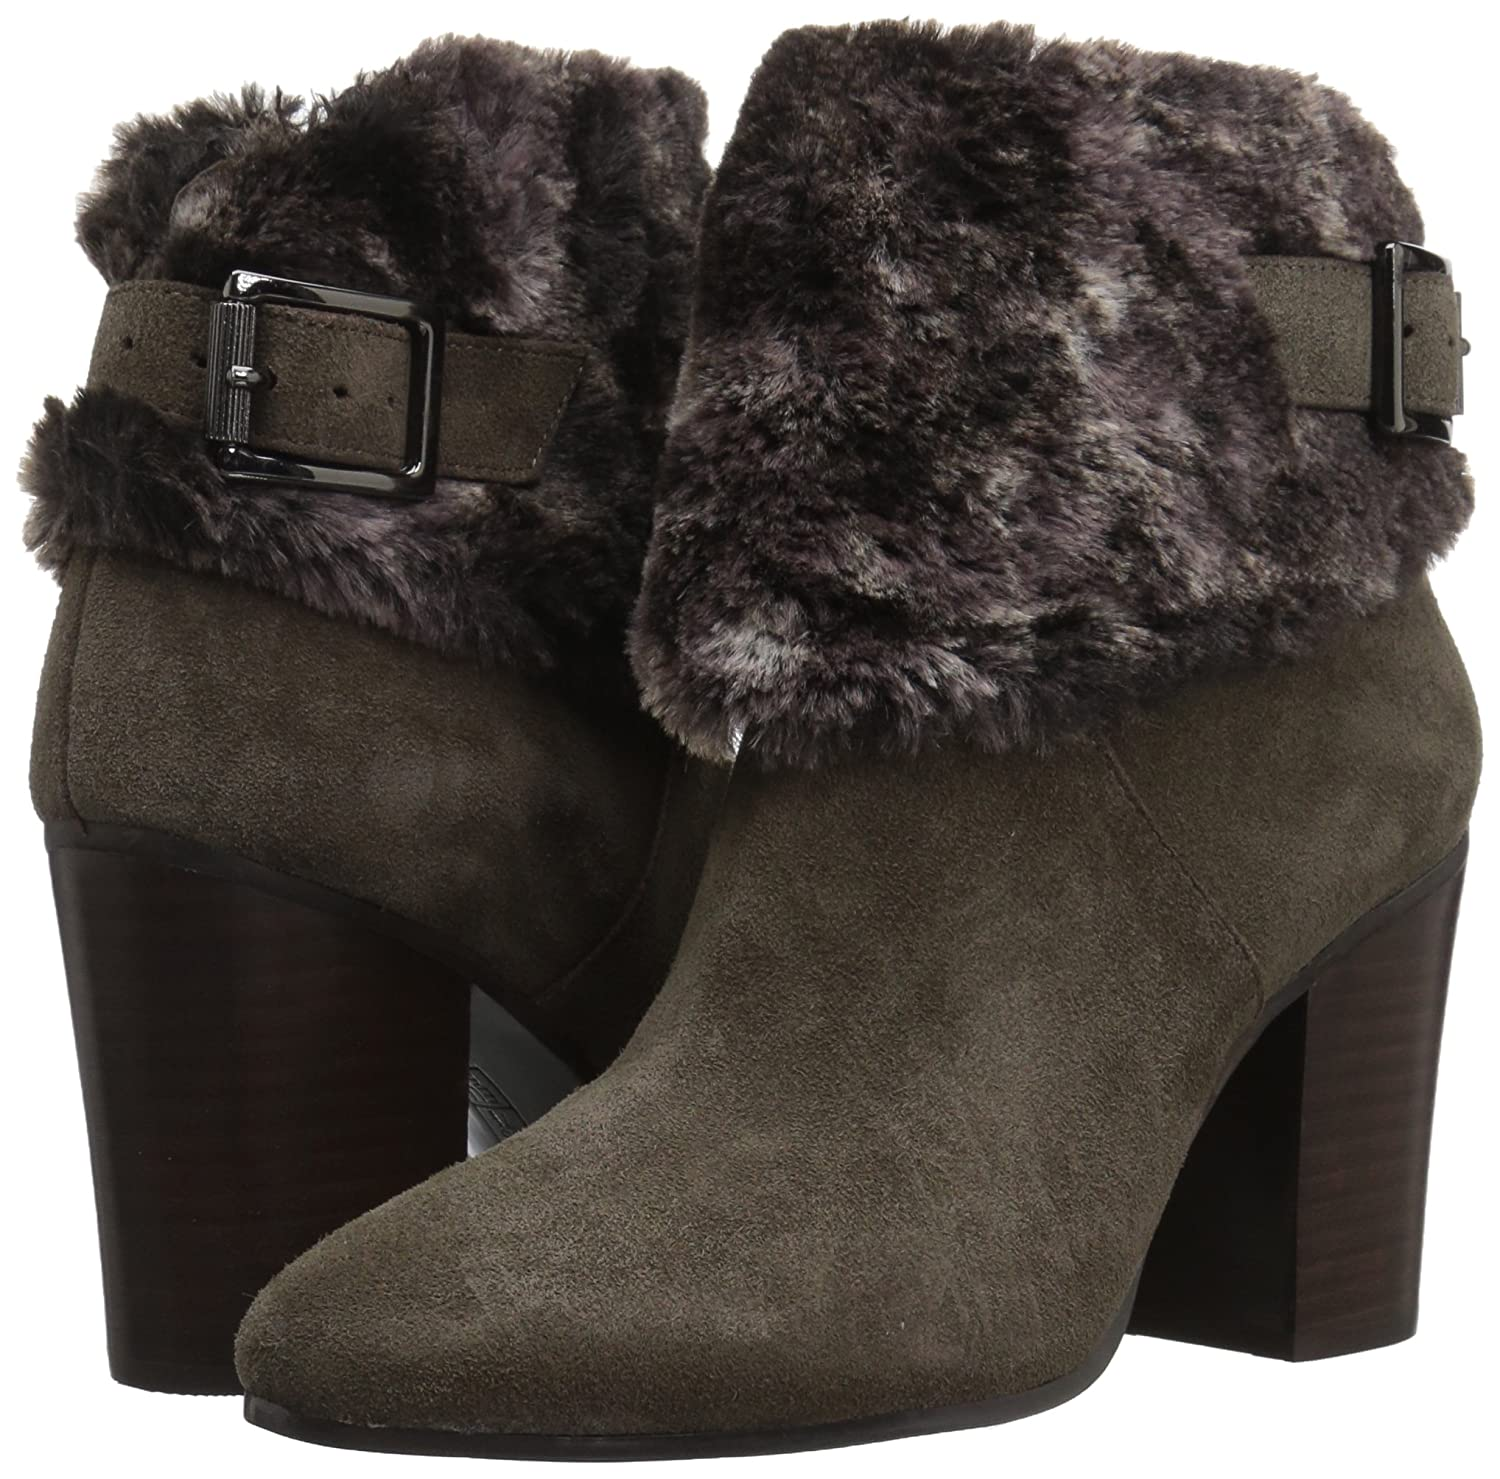 Aerosoles Women's North Square Ankle Boot Suede B074GZDBLH 7.5 B(M) US|Taupe Suede Boot ebf478